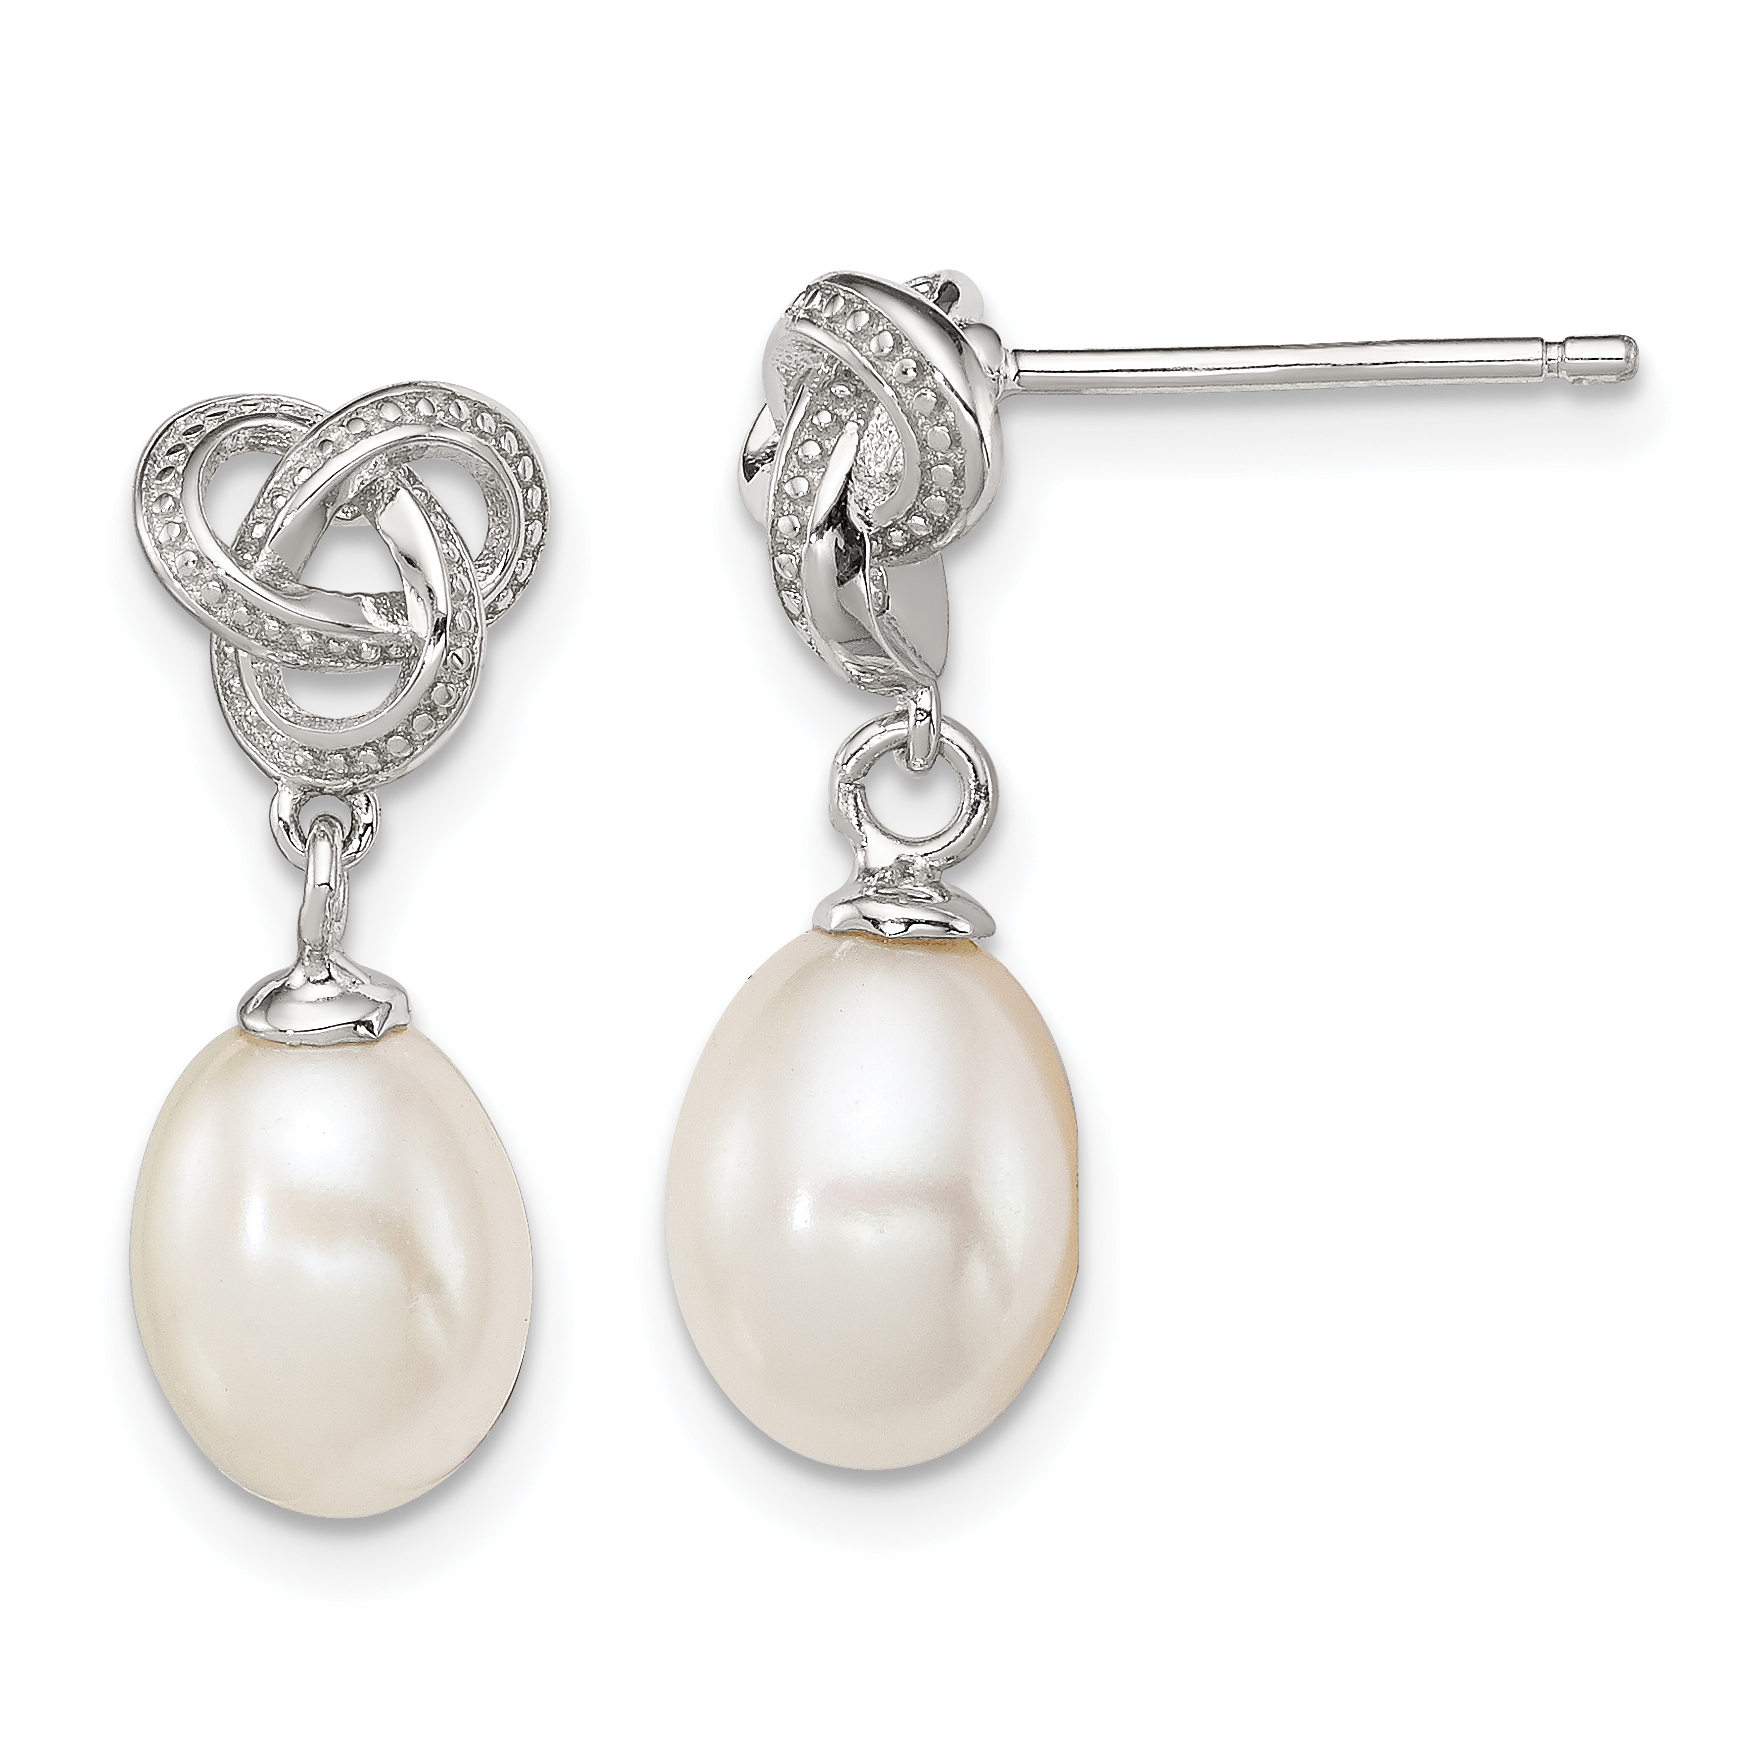 925 Sterling Silver White Freshwater Pearl Pendant Necklace Stud Earrings Set